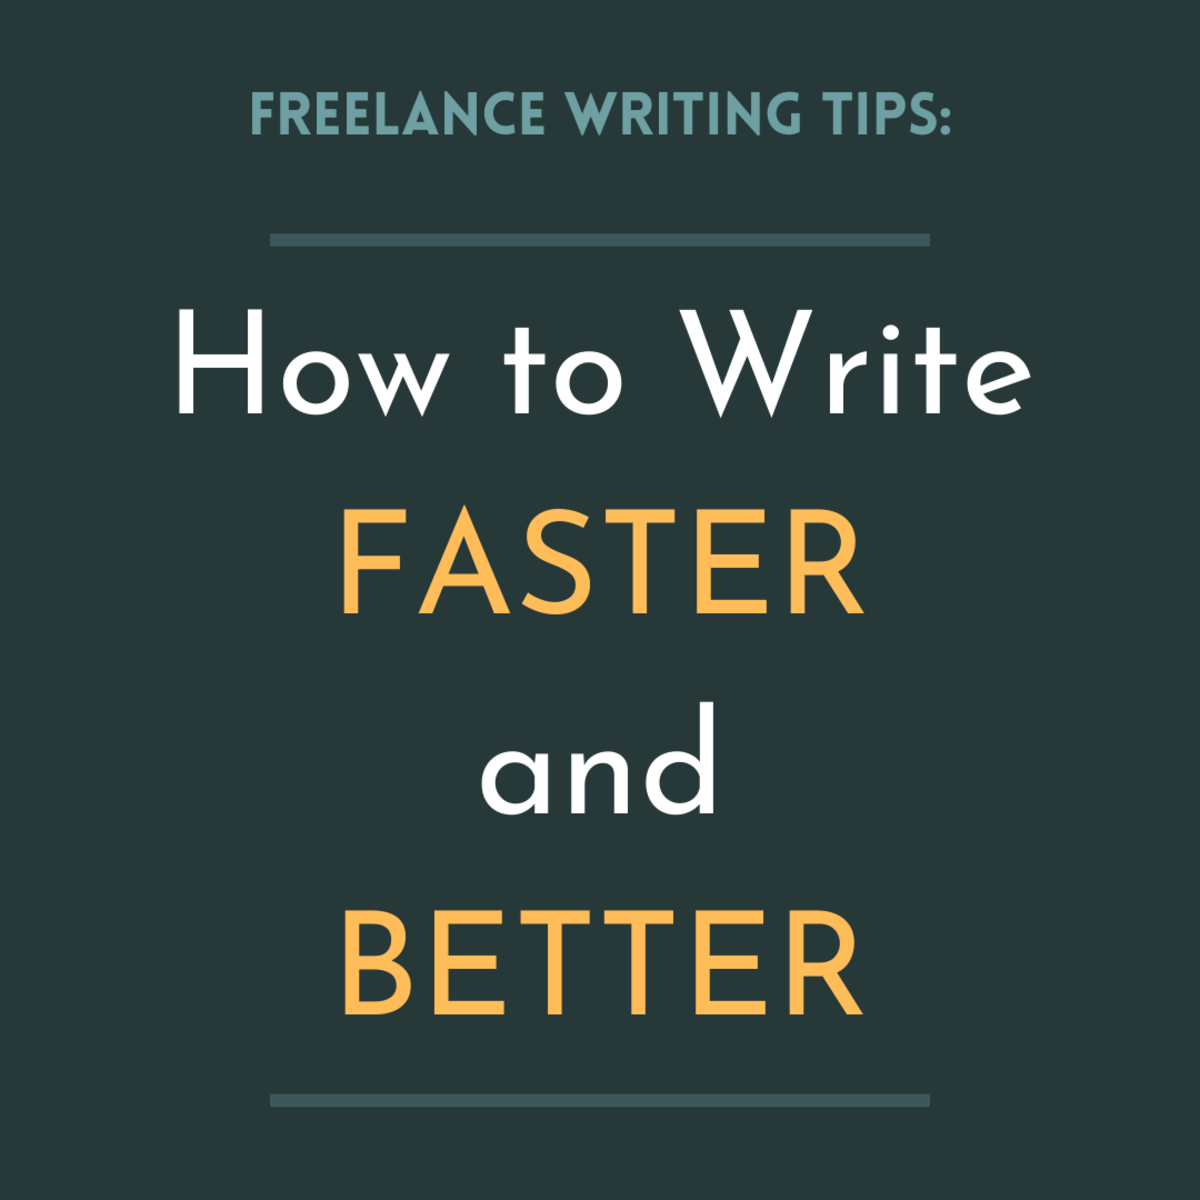 How to Research and Write High-Quality Articles Quickly